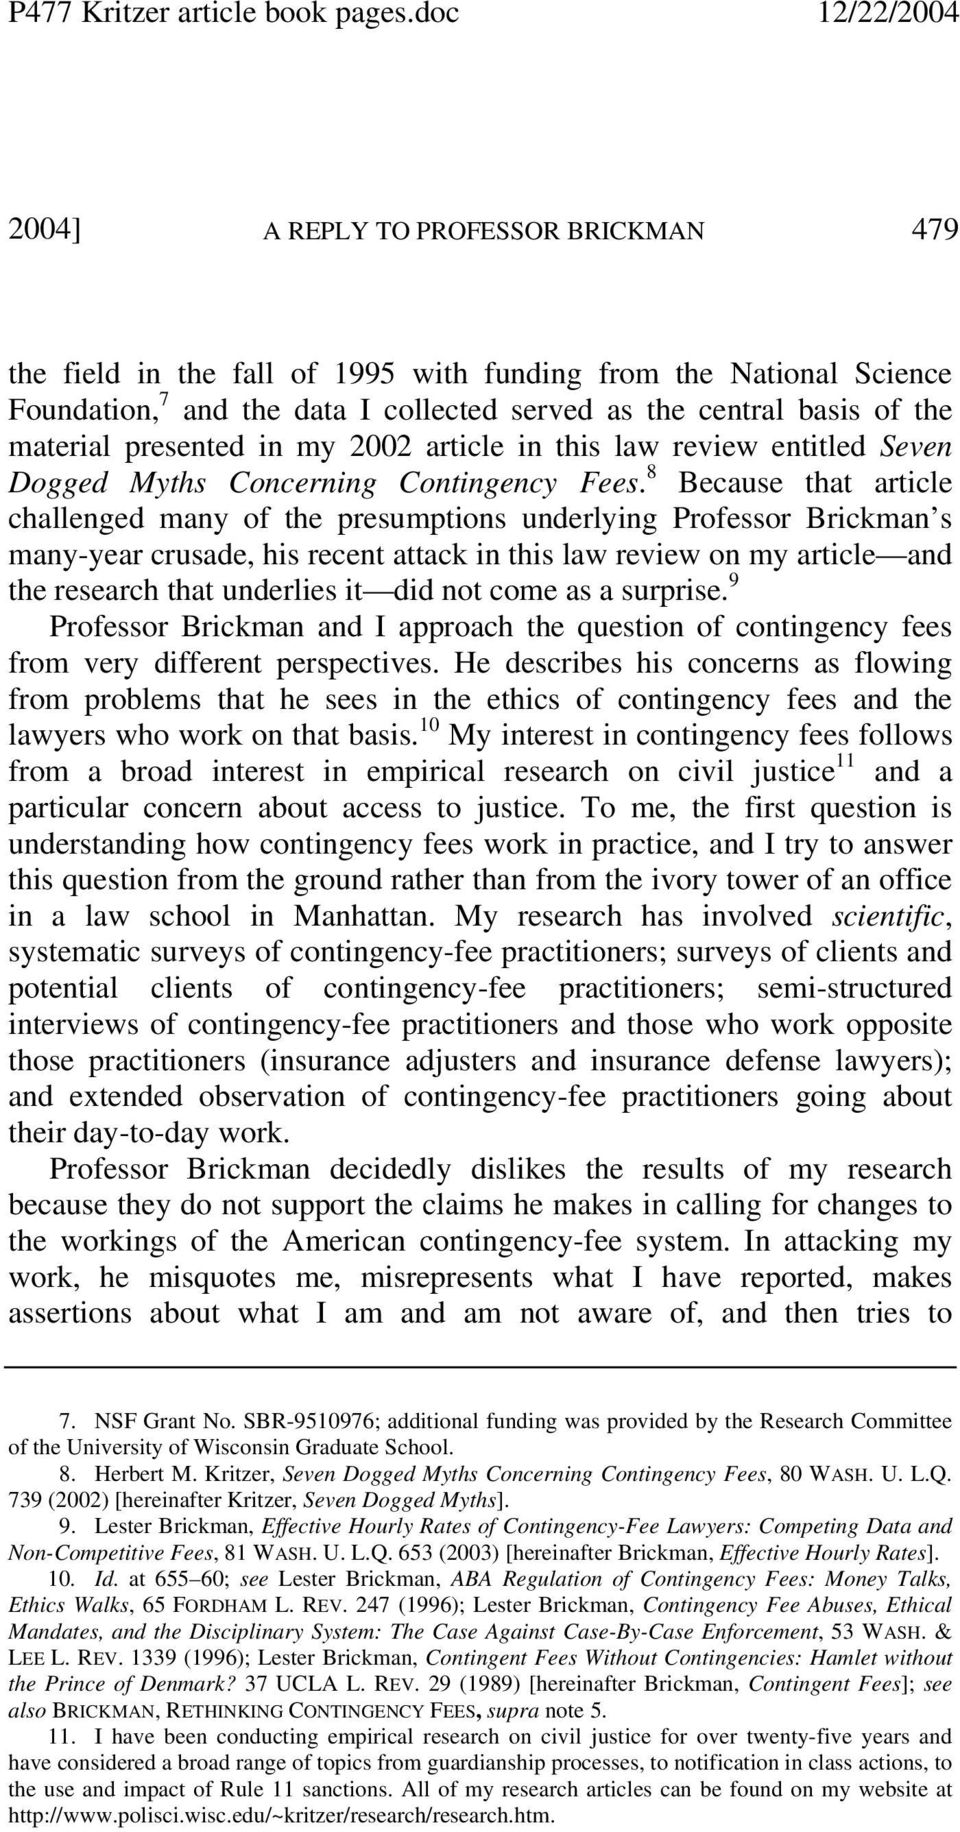 8 Because that article challenged many of the presumptions underlying Professor Brickman s many-year crusade, his recent attack in this law review on my article and the research that underlies it did